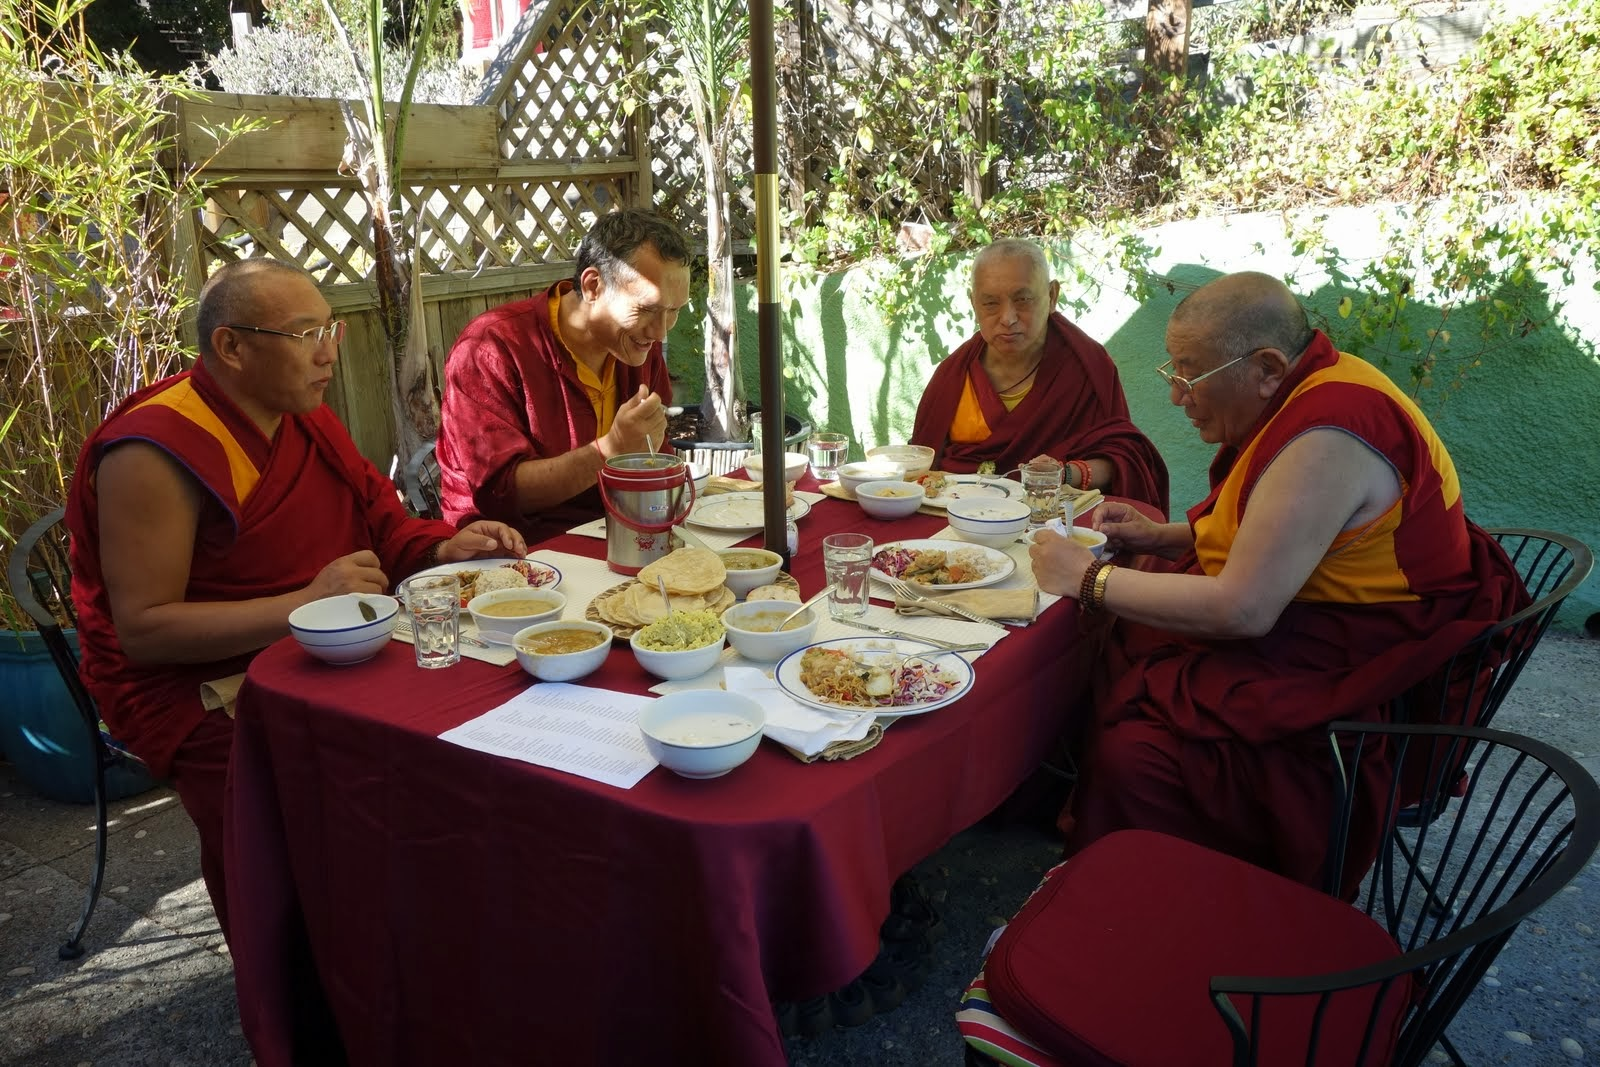 Dagri Rinpoche, Yangsi Rinpoche, Lama Zopa Rinpoche and Geshe Ngawnag Dakpa enjoying lunch offered after long life puja for Lama Zopa Rinpoche at Land of Medicine Buddha Sept. 29, 2013 Photo: Ven. Roger Kunsang